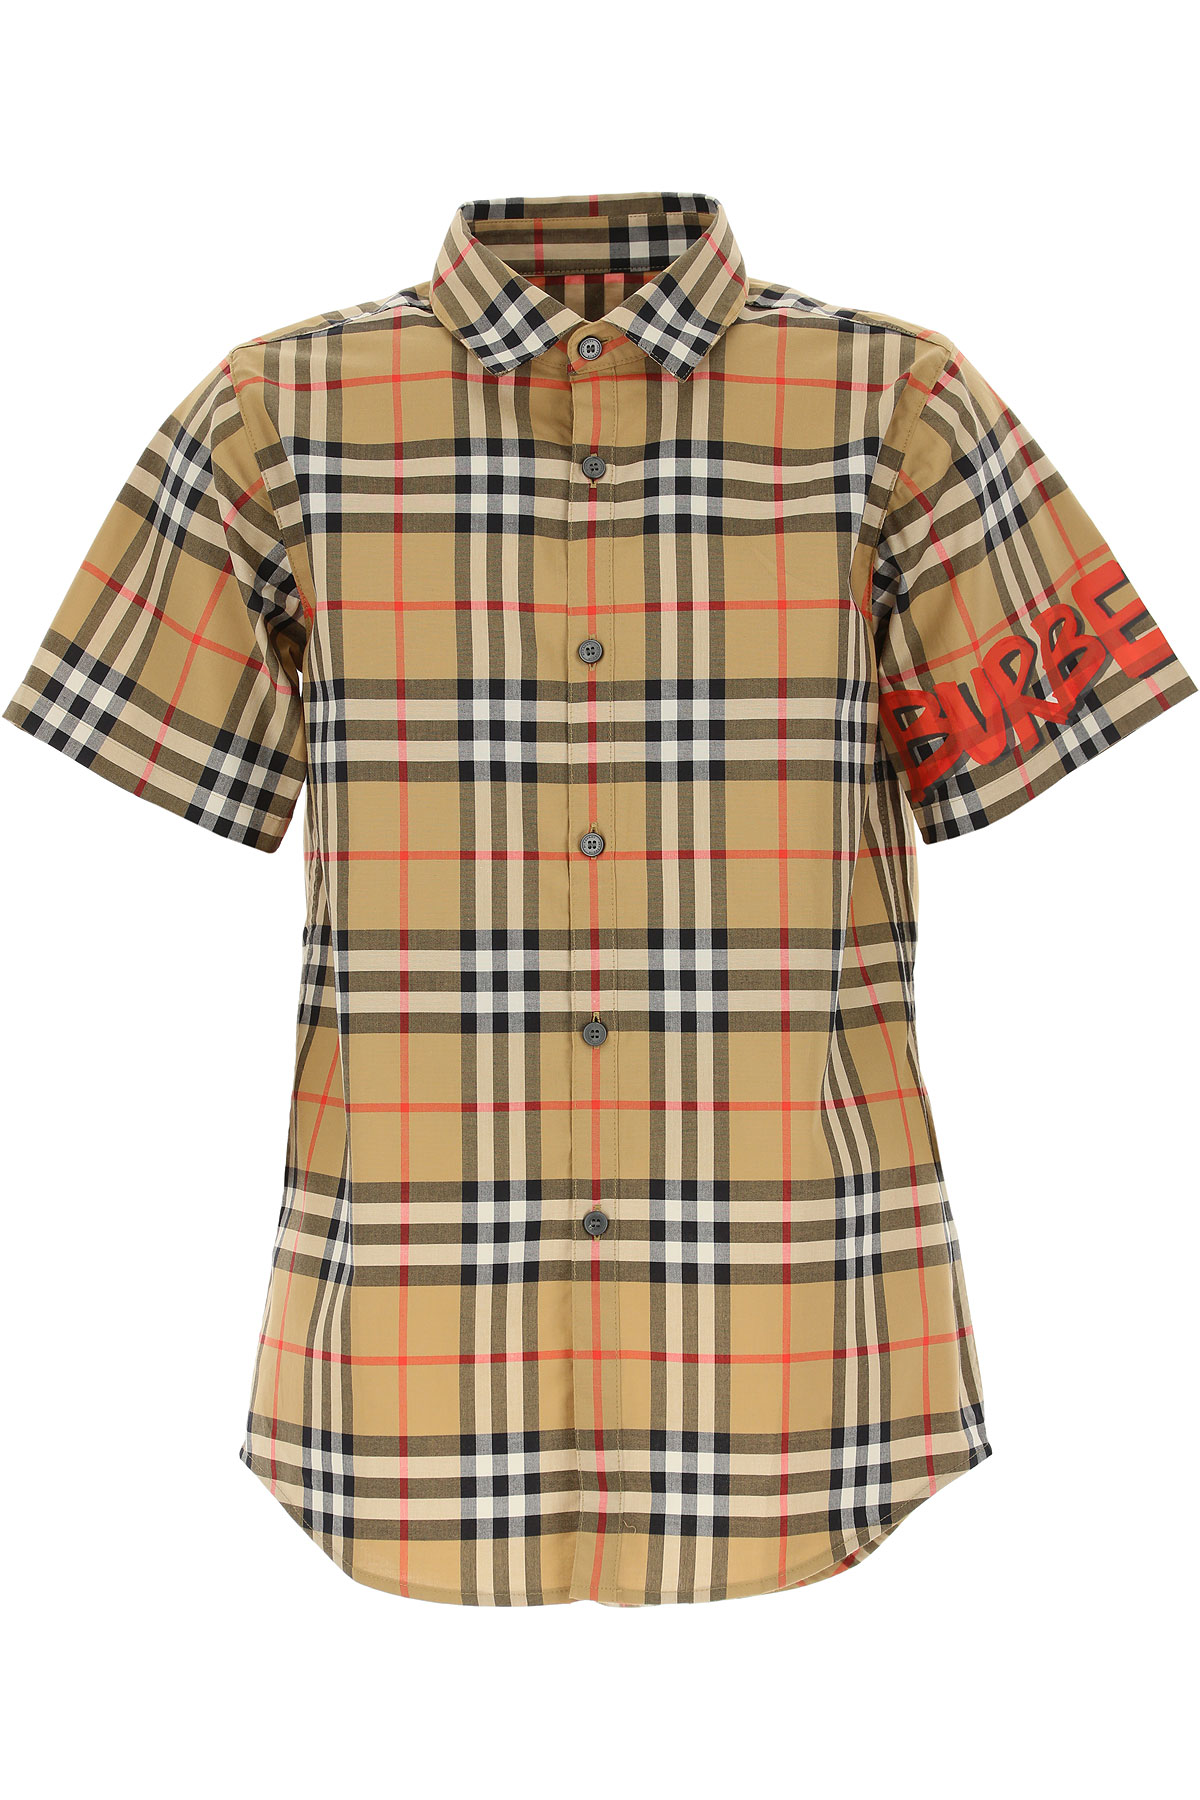 Image of Burberry Kids Shirts for Boys, Brown, Cotton, 2017, 10Y 14Y 8Y